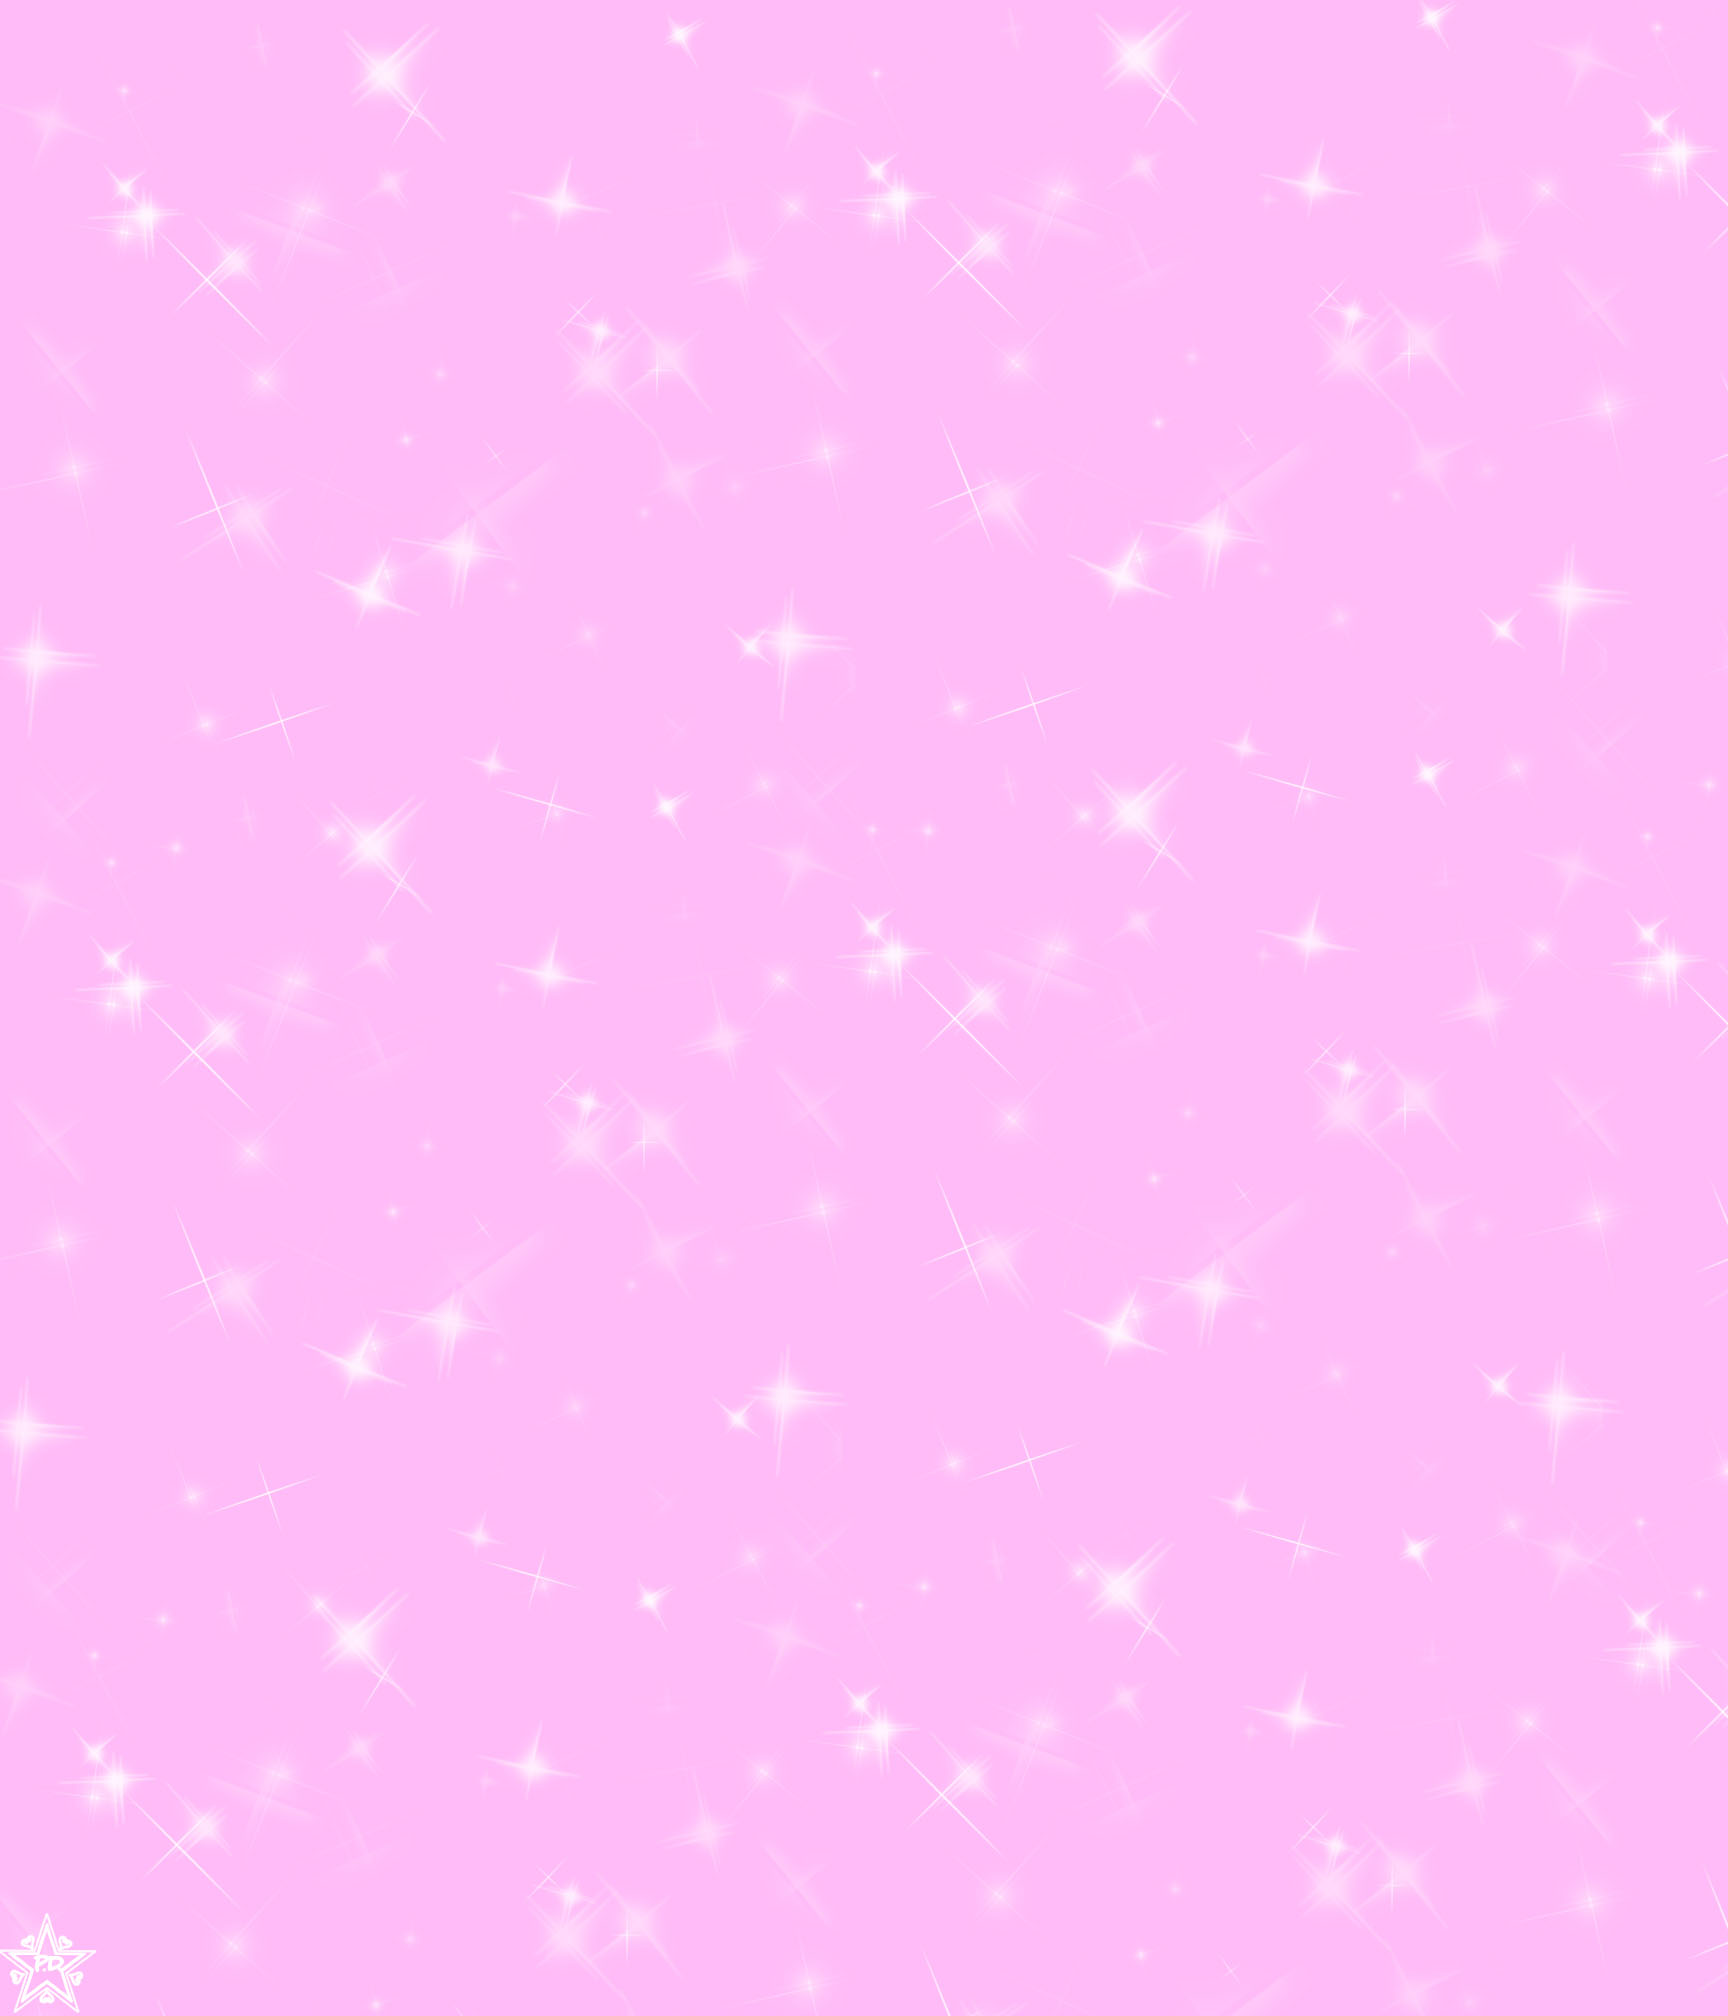 Baby Pink Glitter Wallpaper - WallpaperSafari